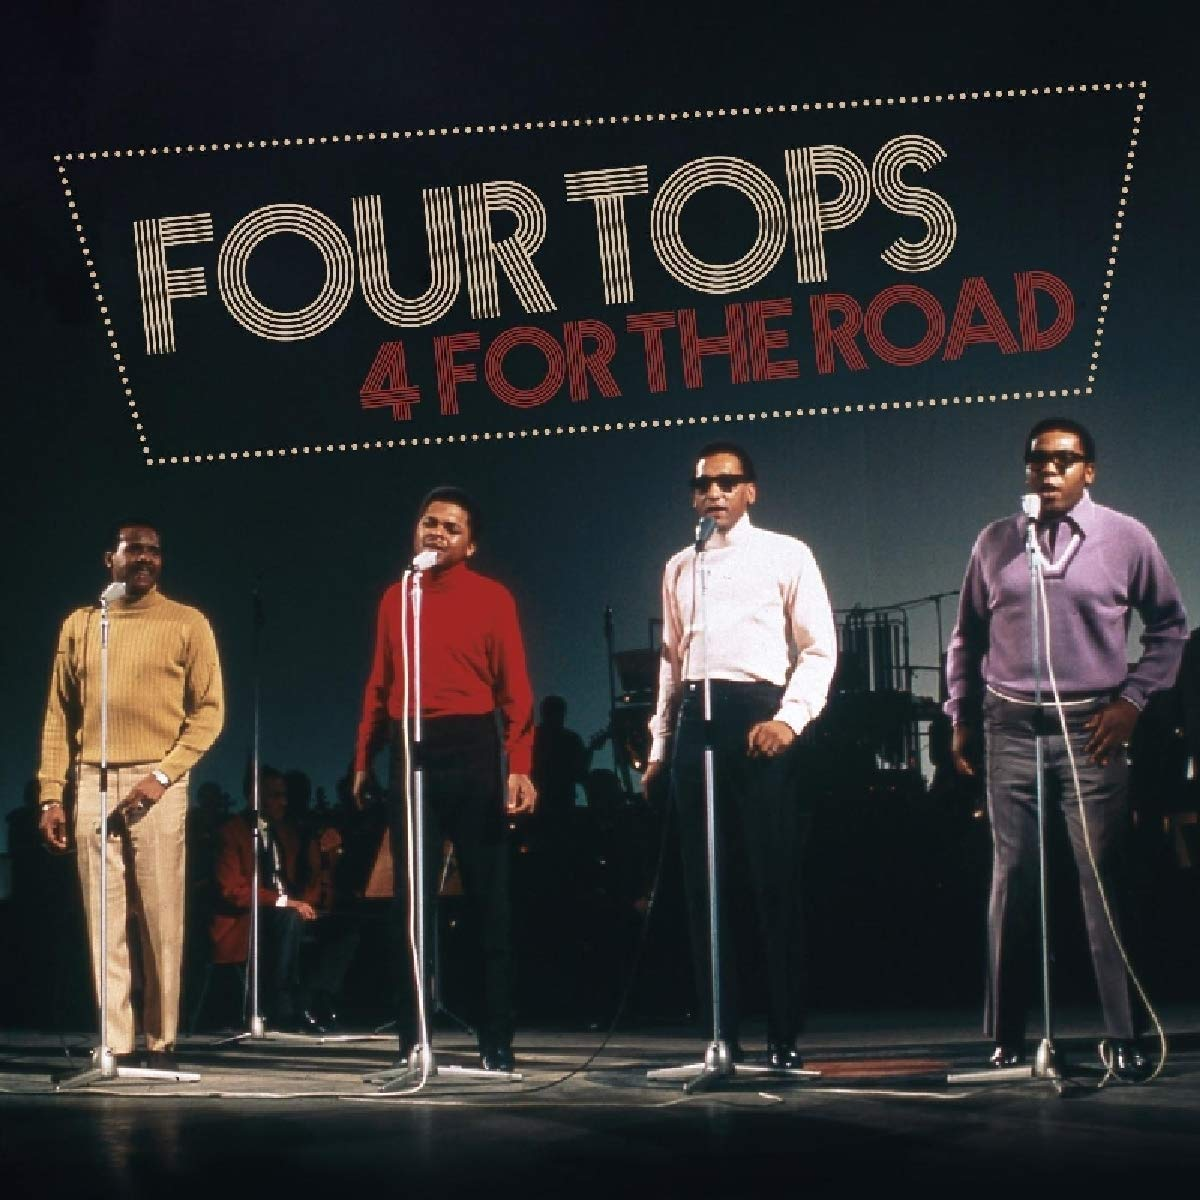 Four Tops - Four For The Road